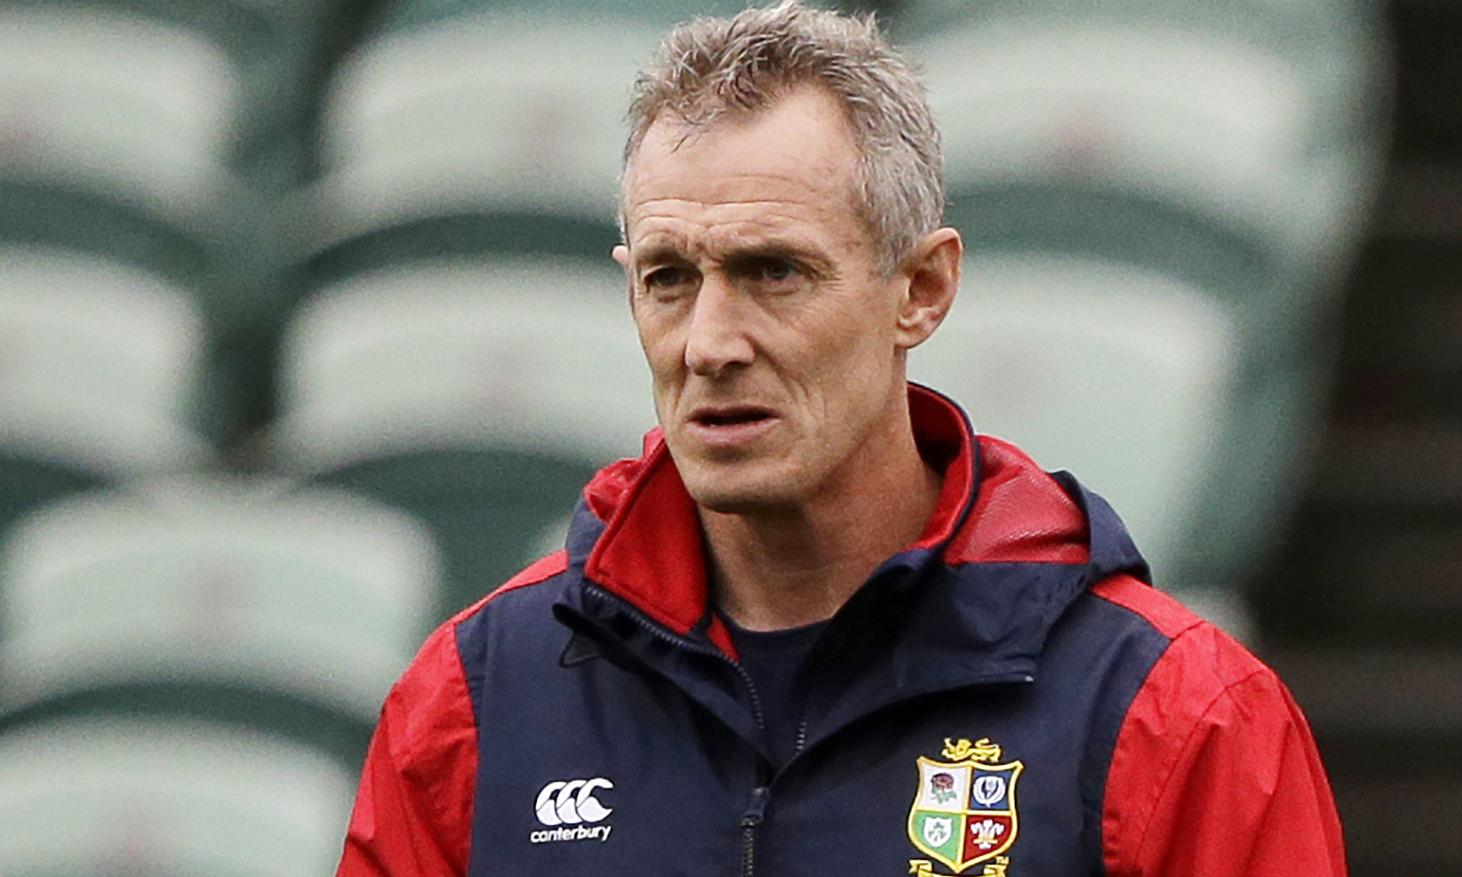 Wales players 'know where we stand' on rugby integrity issues